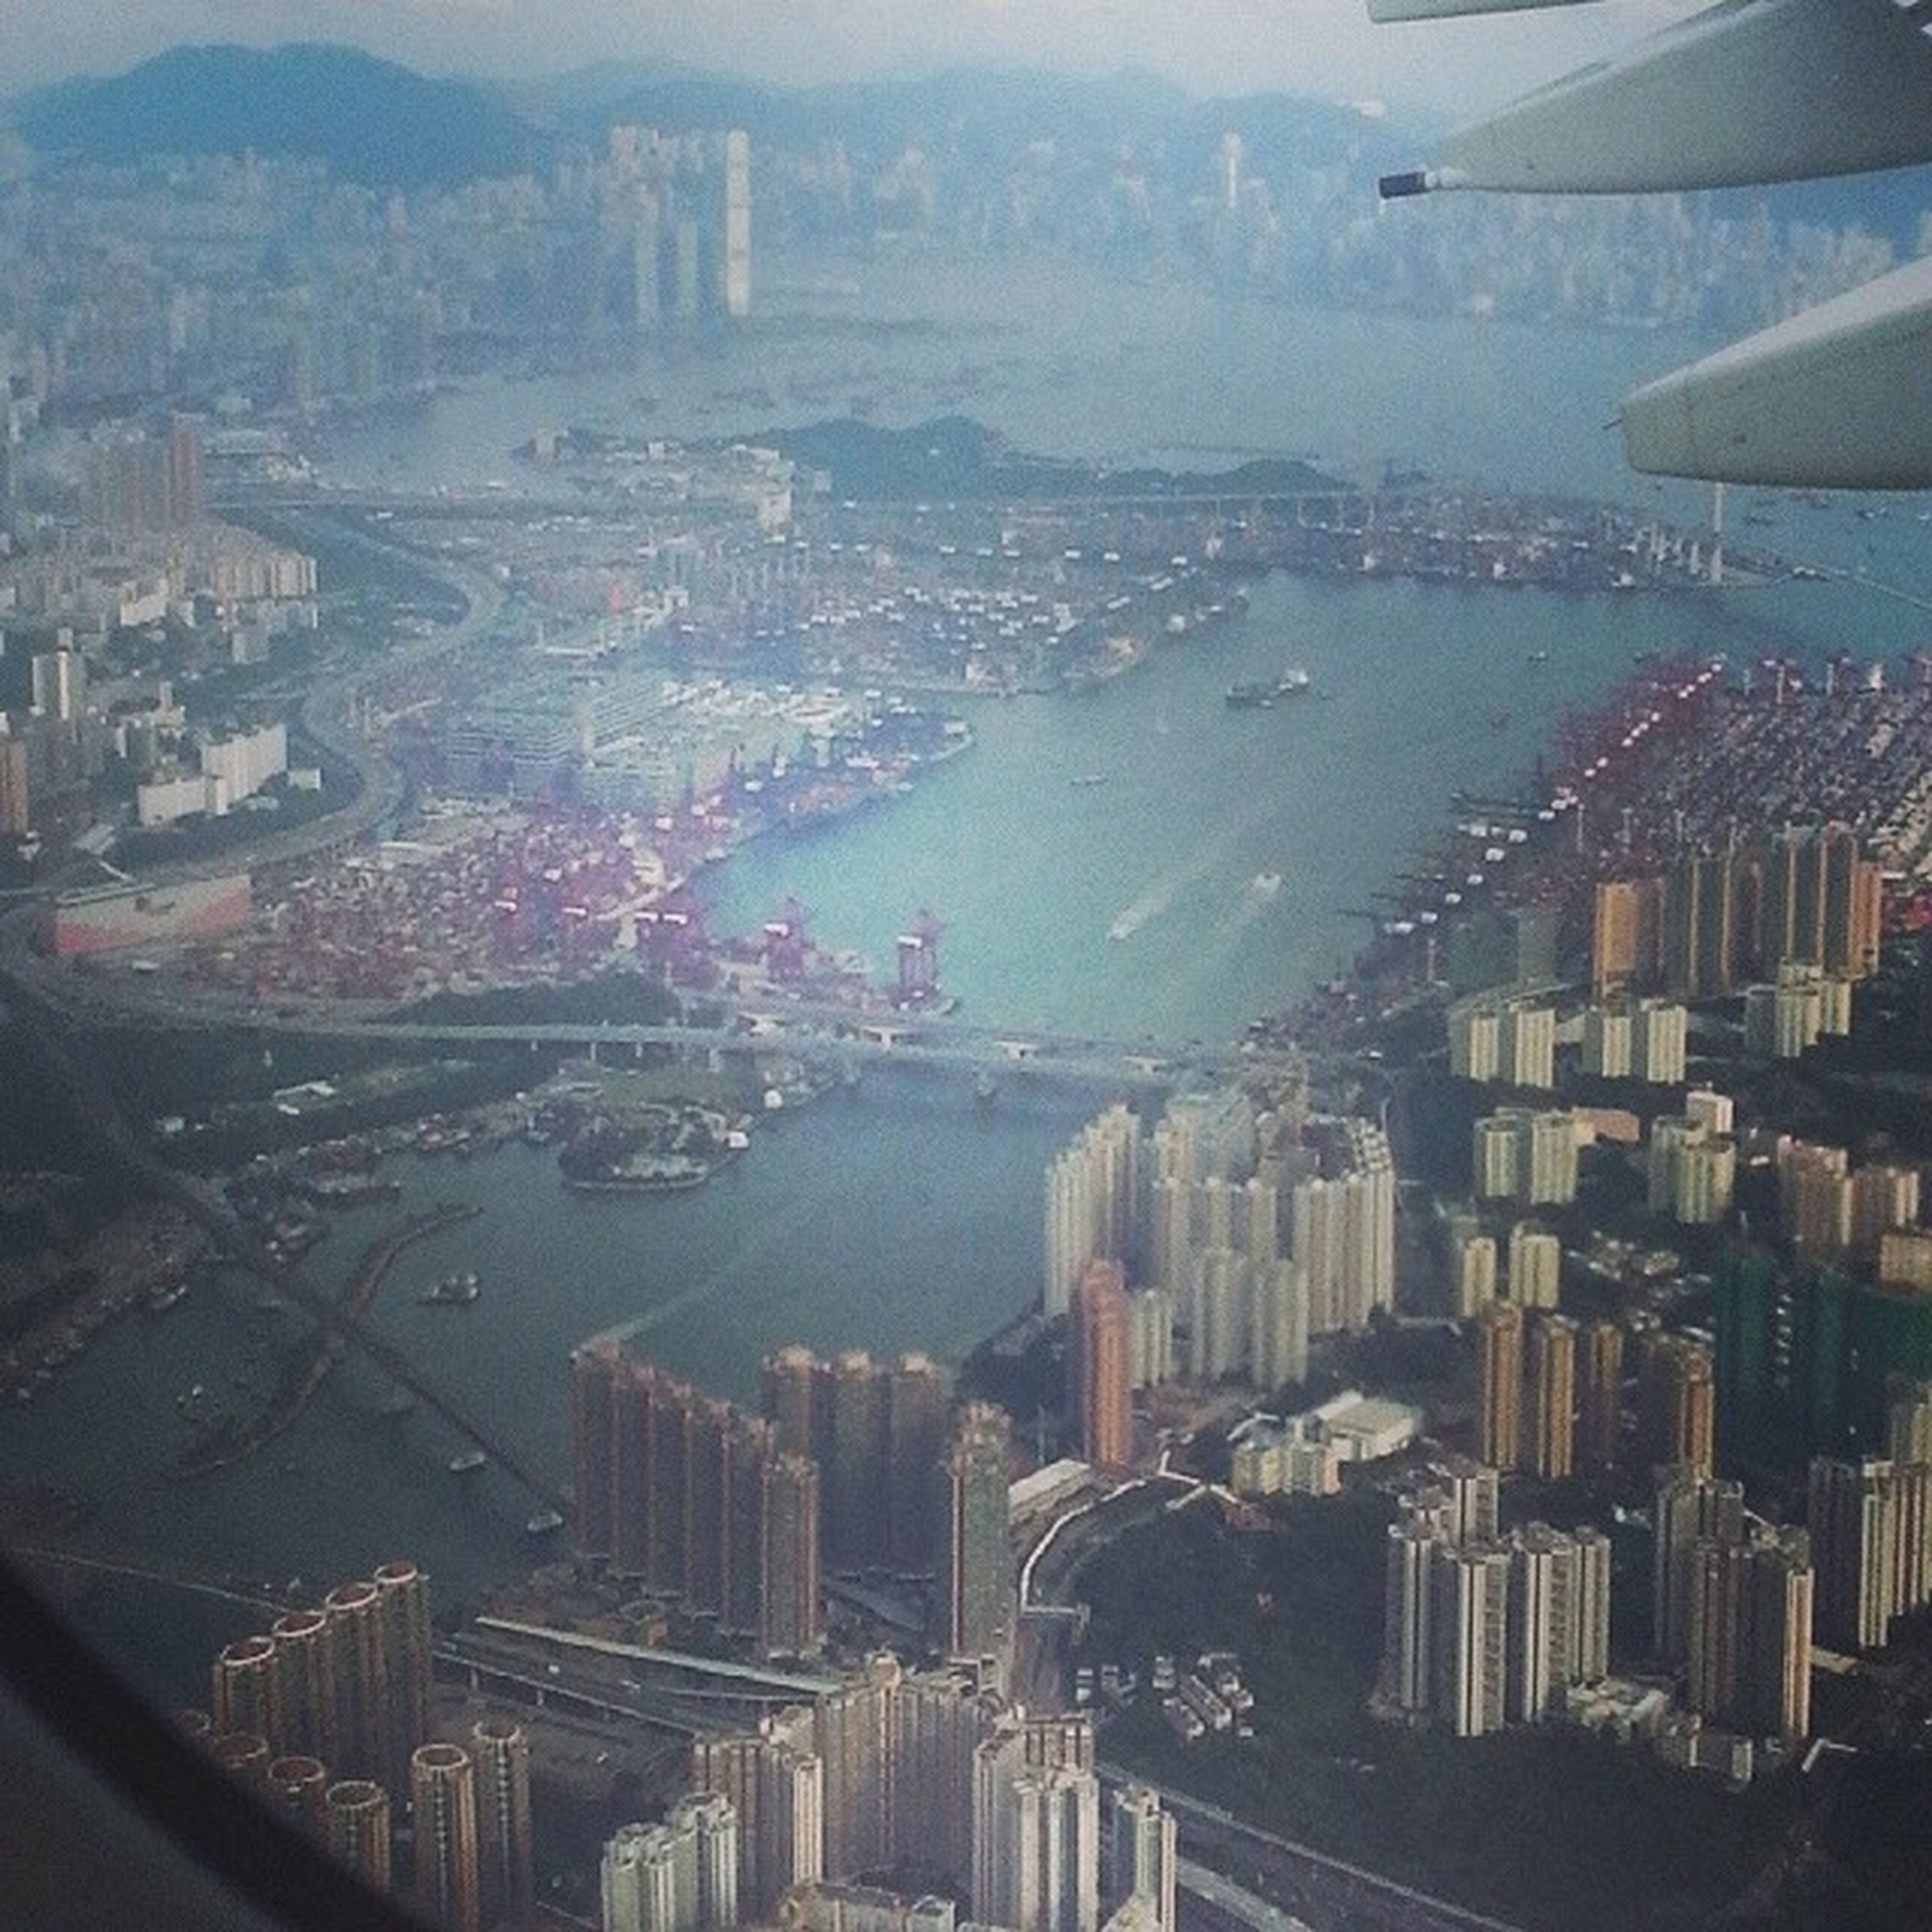 city, cityscape, building exterior, architecture, transportation, high angle view, aerial view, built structure, mode of transport, crowded, sea, water, city life, airplane, residential district, travel, river, flying, car, sky